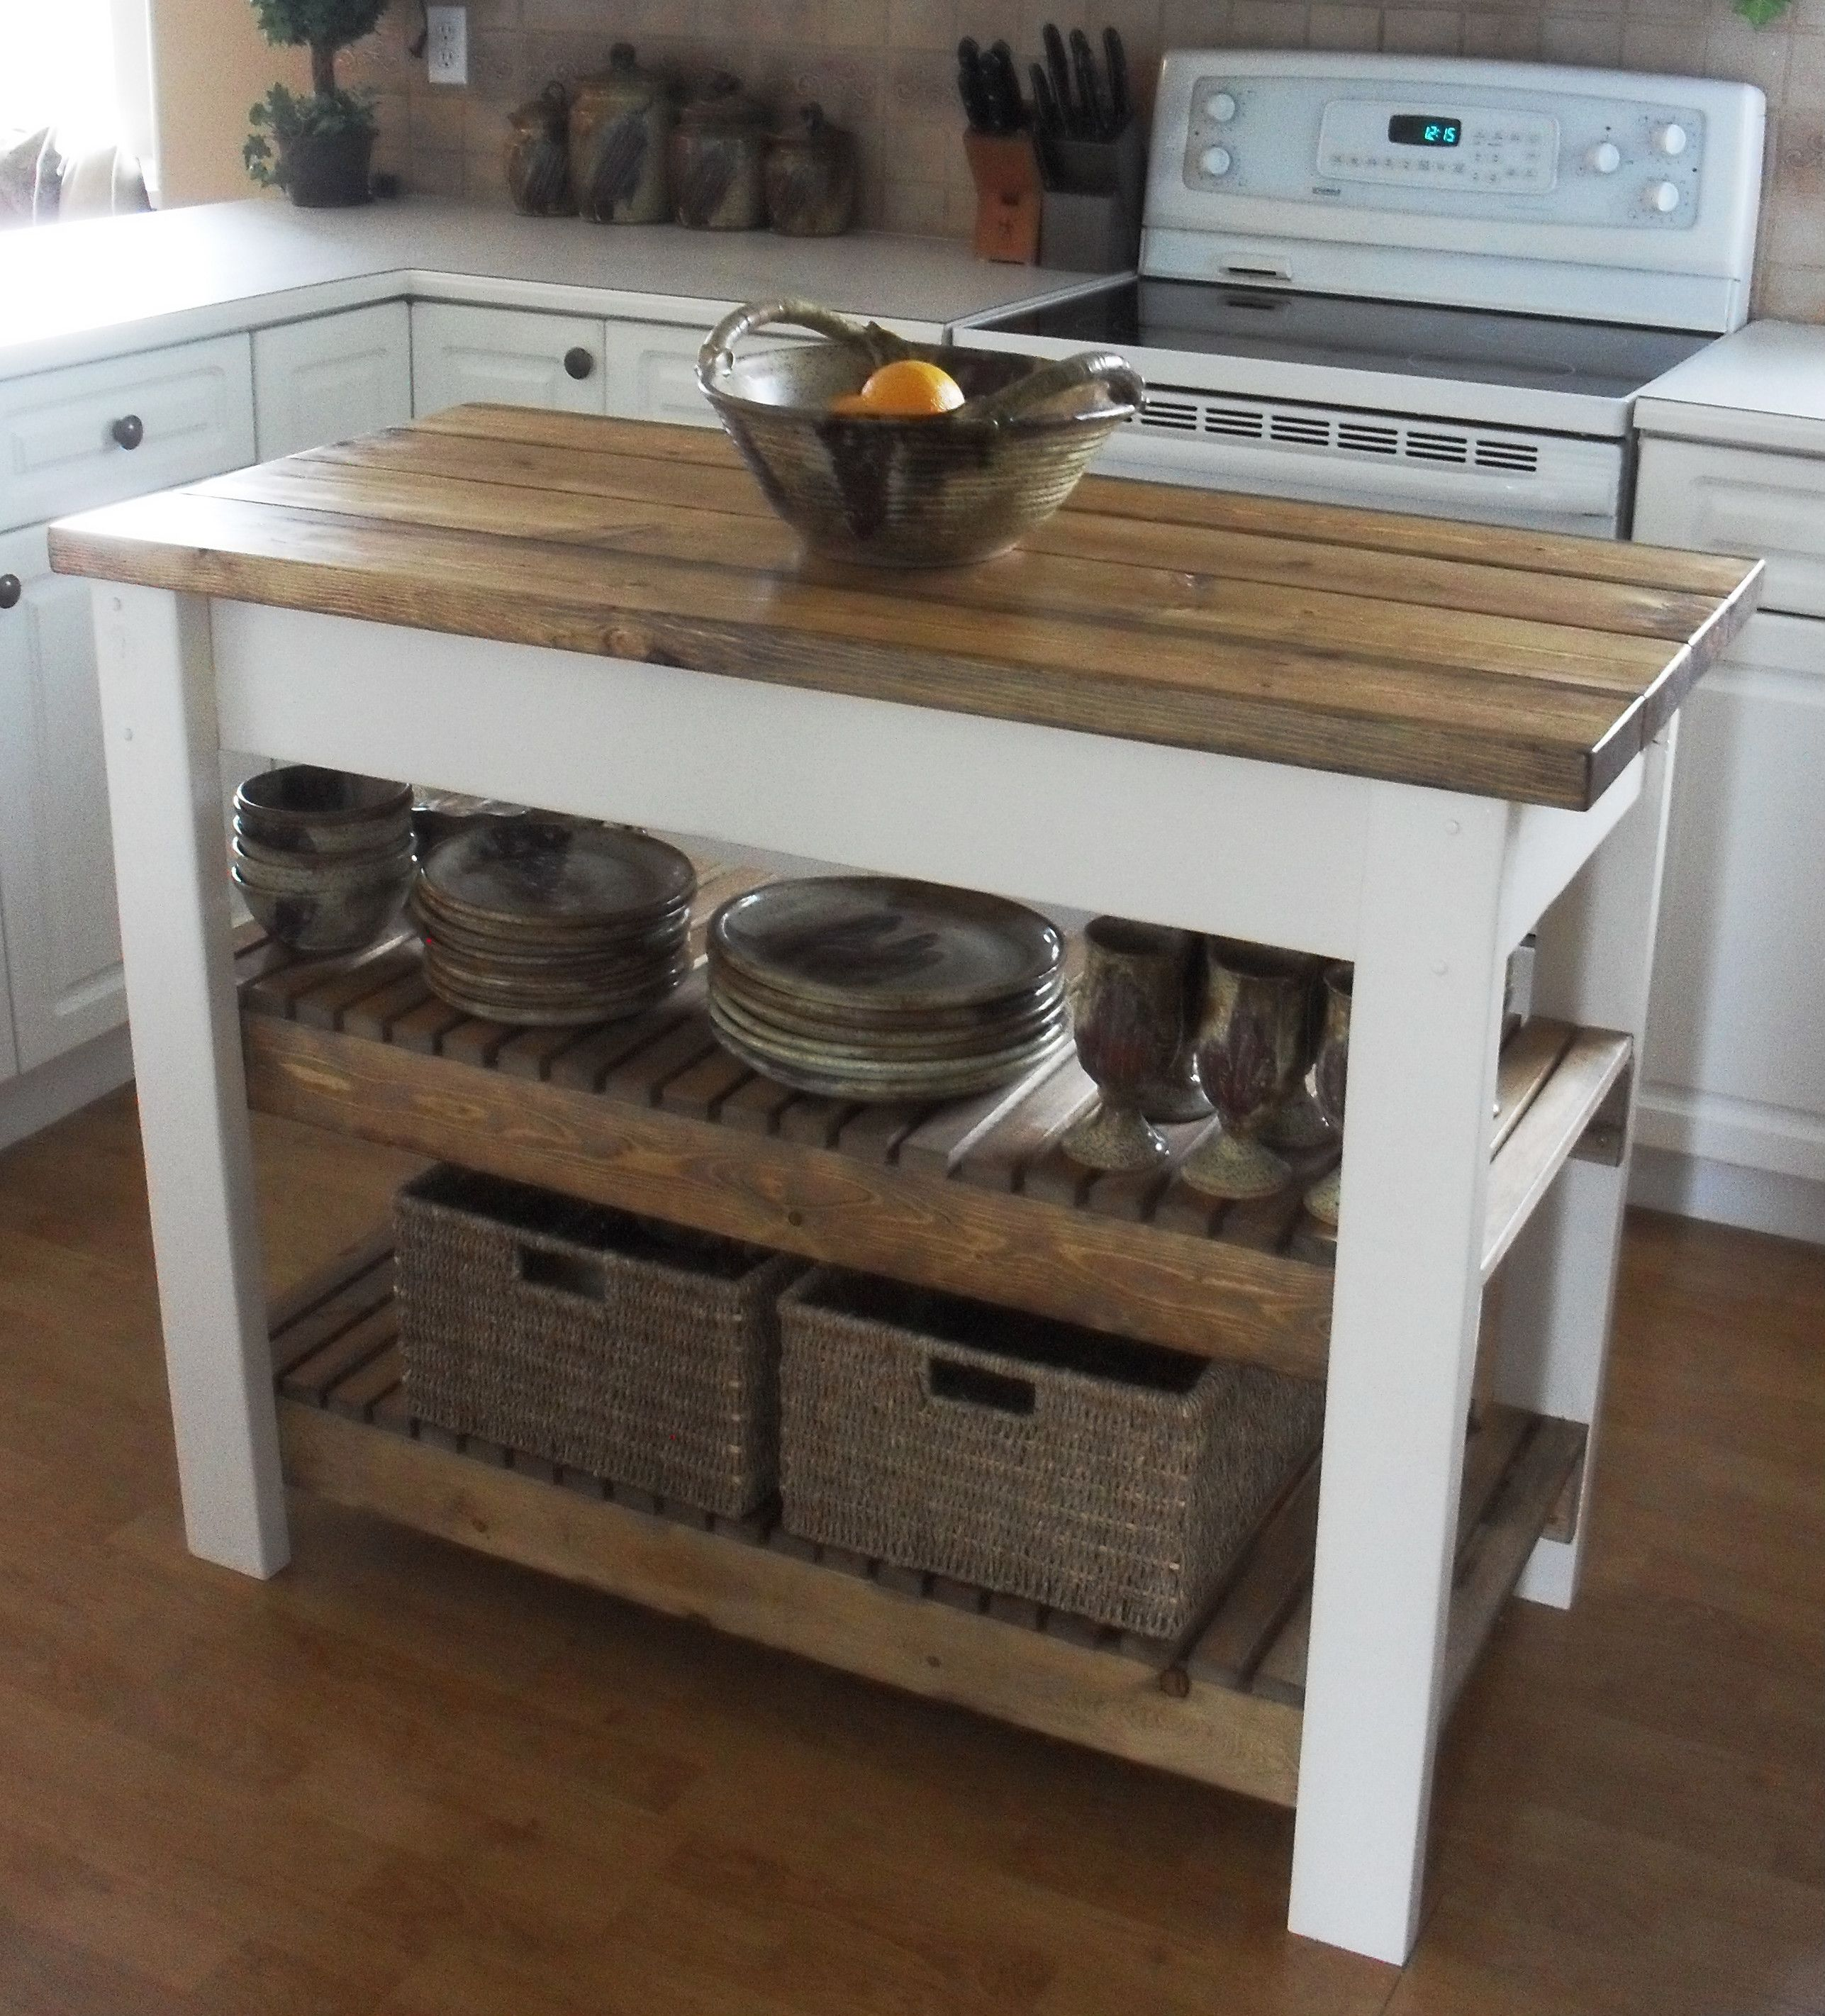 Uncategorized Diy Kitchen Island 15 wonderful diy ideas to upgrade the kitchen10 kitchen white islandkitchen